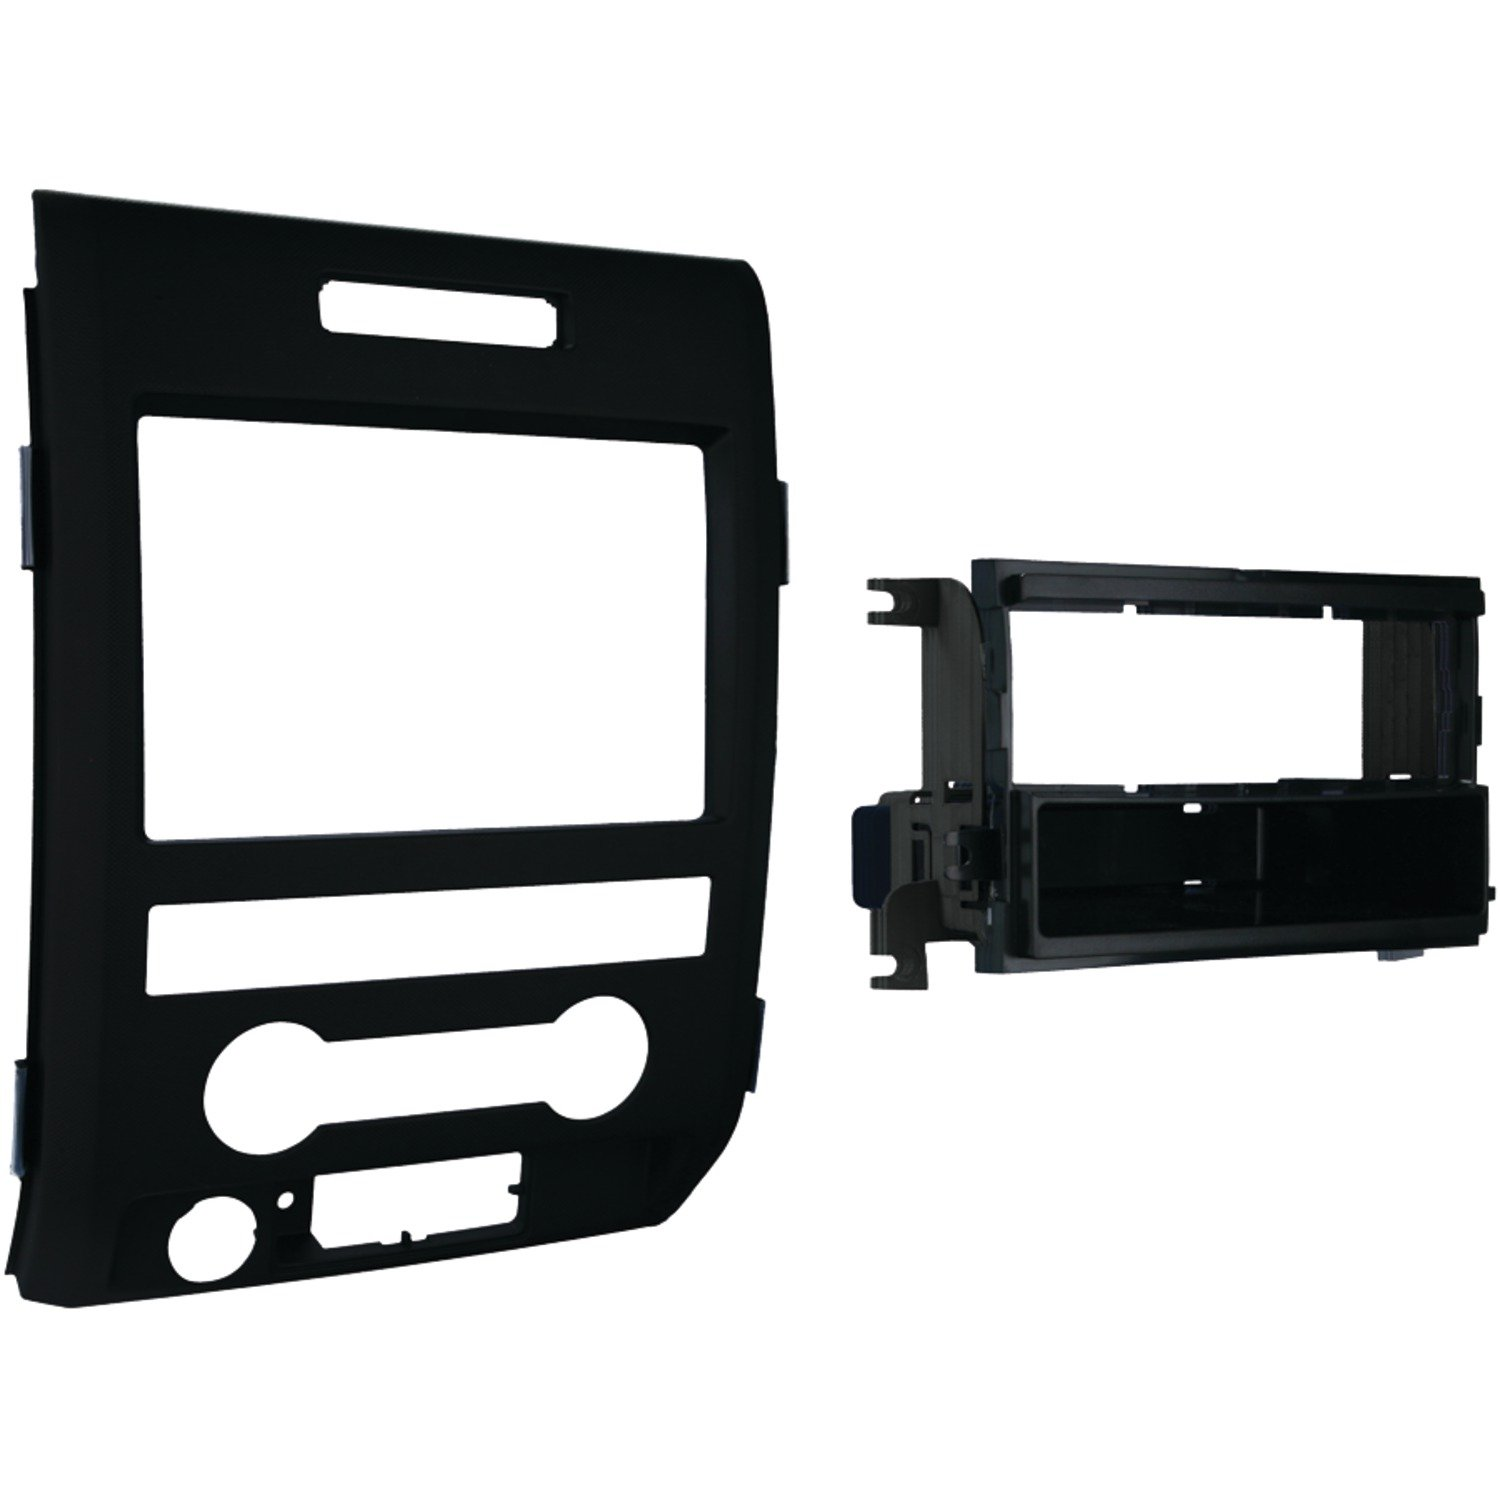 61EJfEsElrL._SL1500_ amazon com metra 99 5820b single din installation dash kit for Dash Kit for F150 at gsmx.co